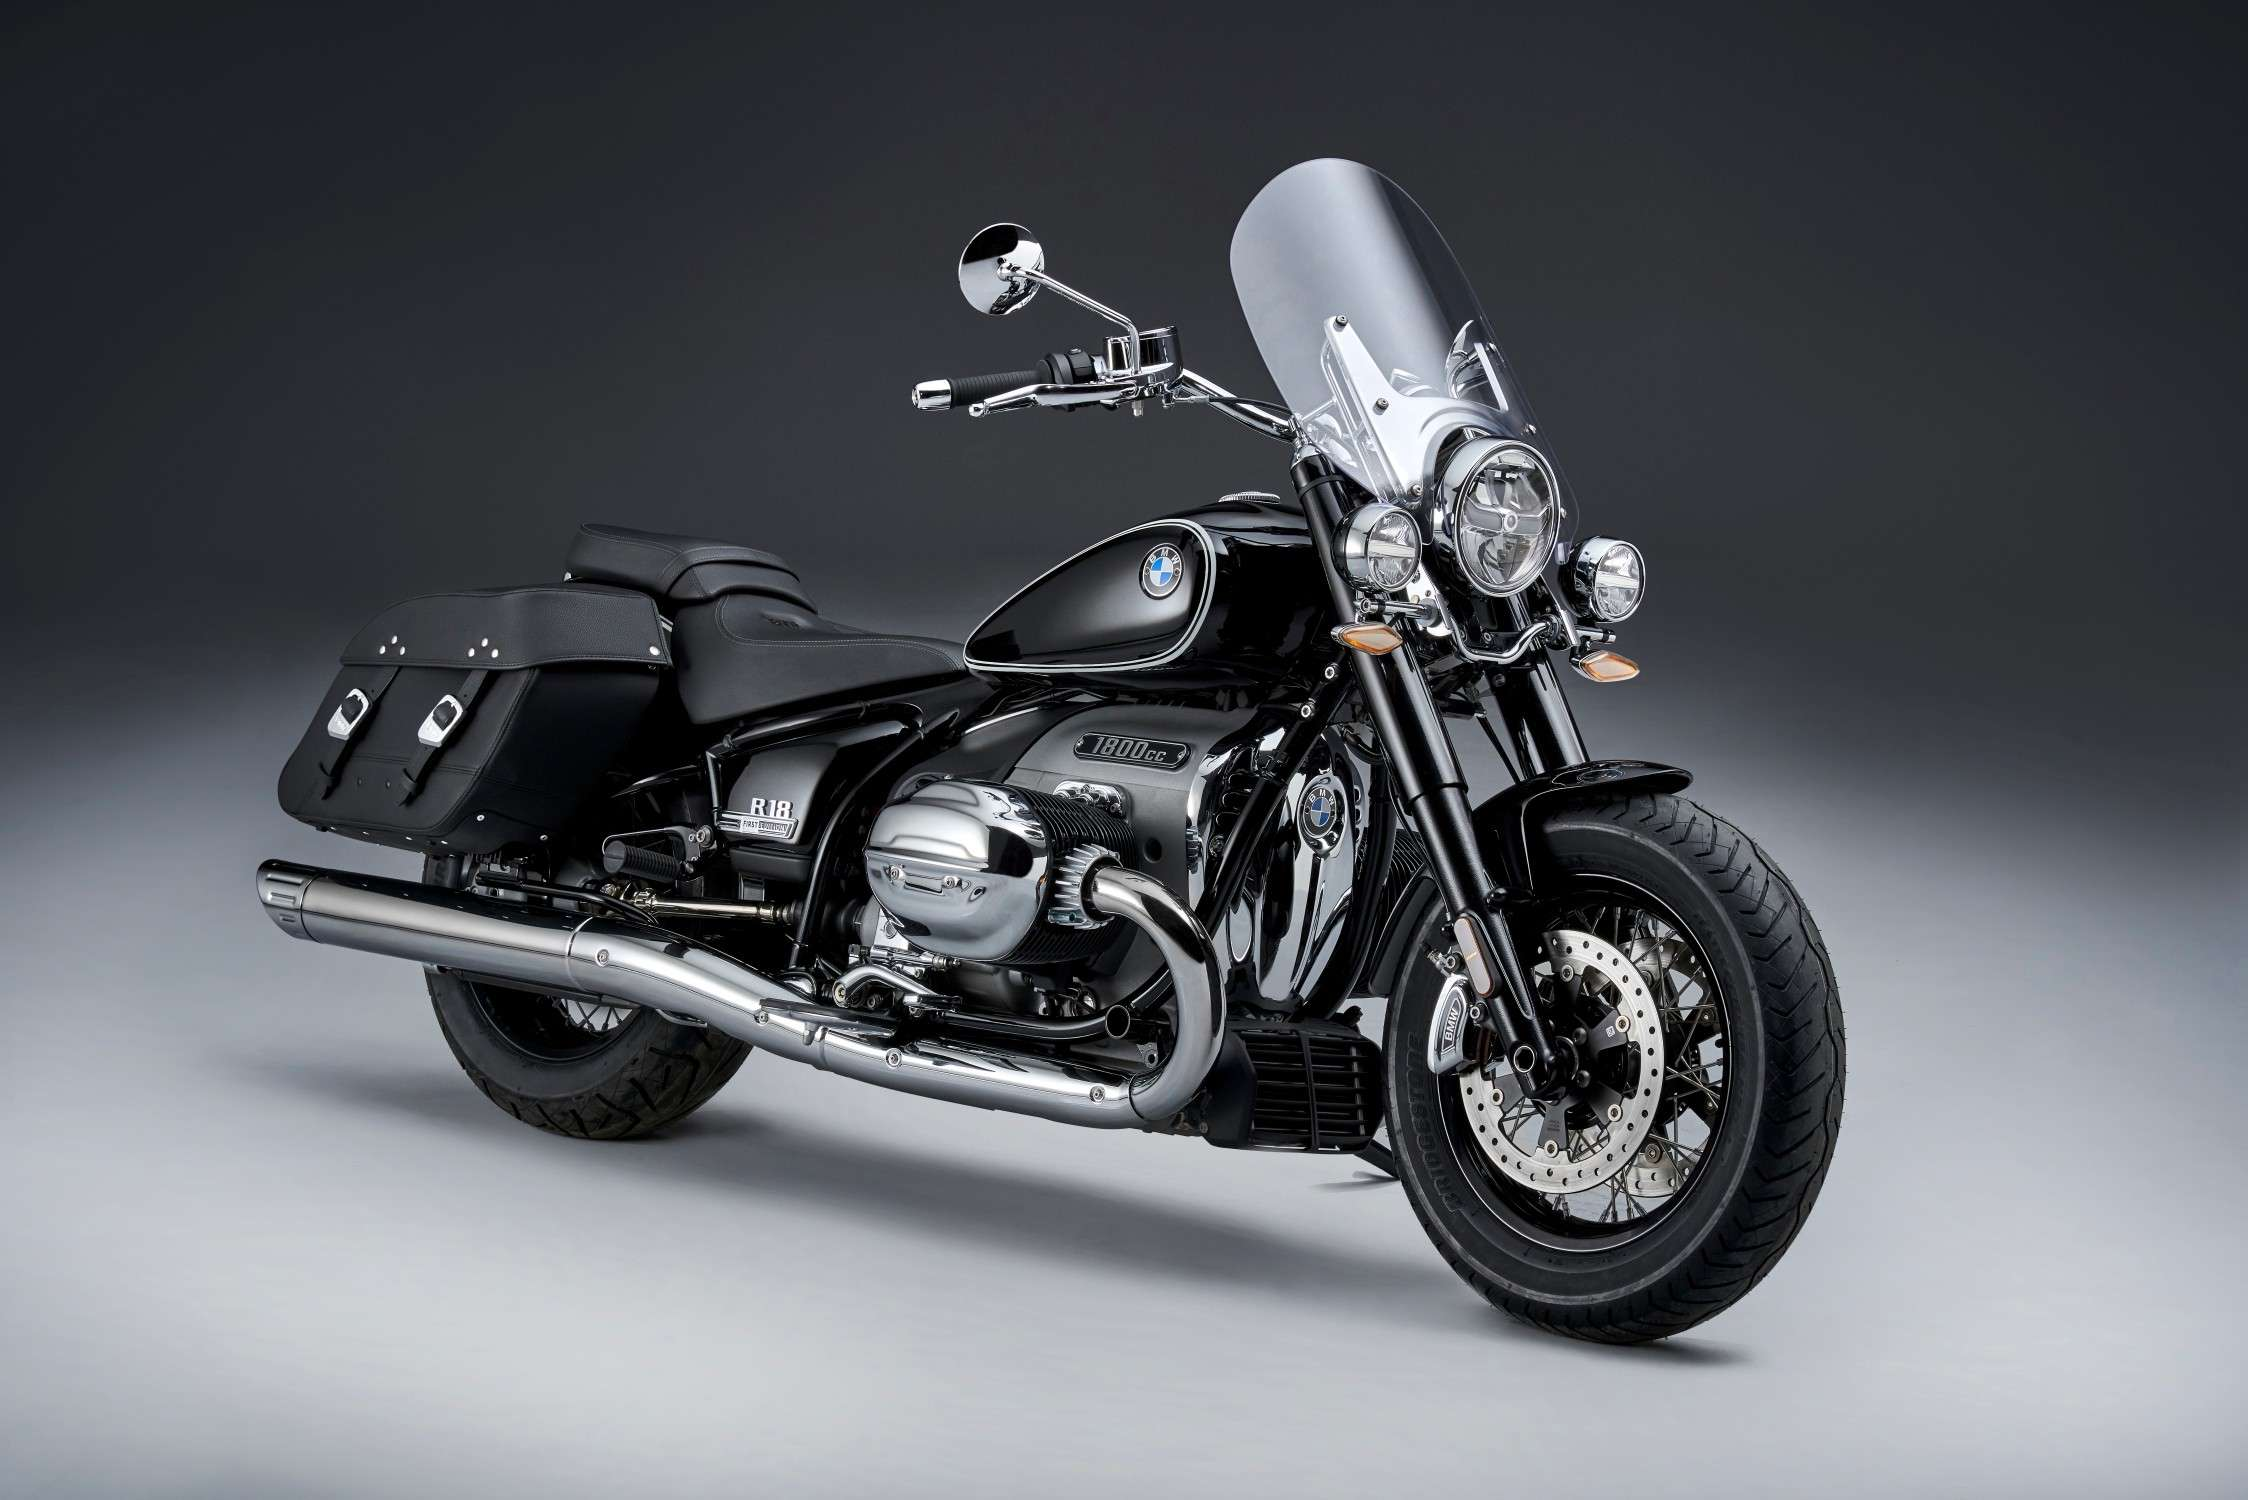 BMW Motorrad launches new R18 Classic in India at INR 24 lakh